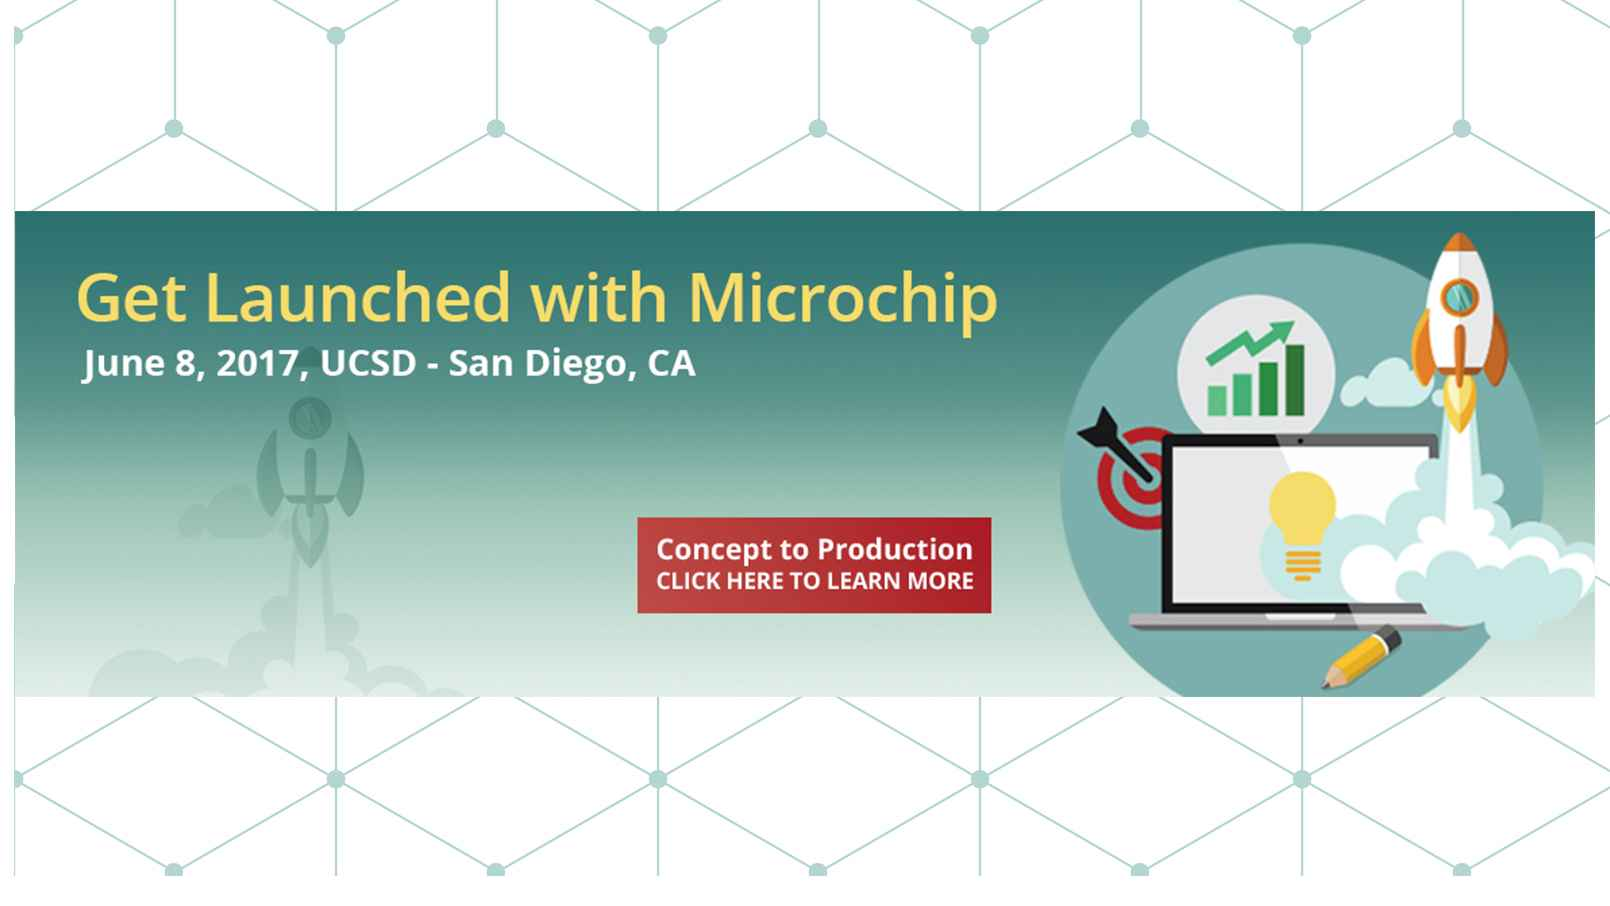 Get Launched with Microchip | Hardware Massive - Global